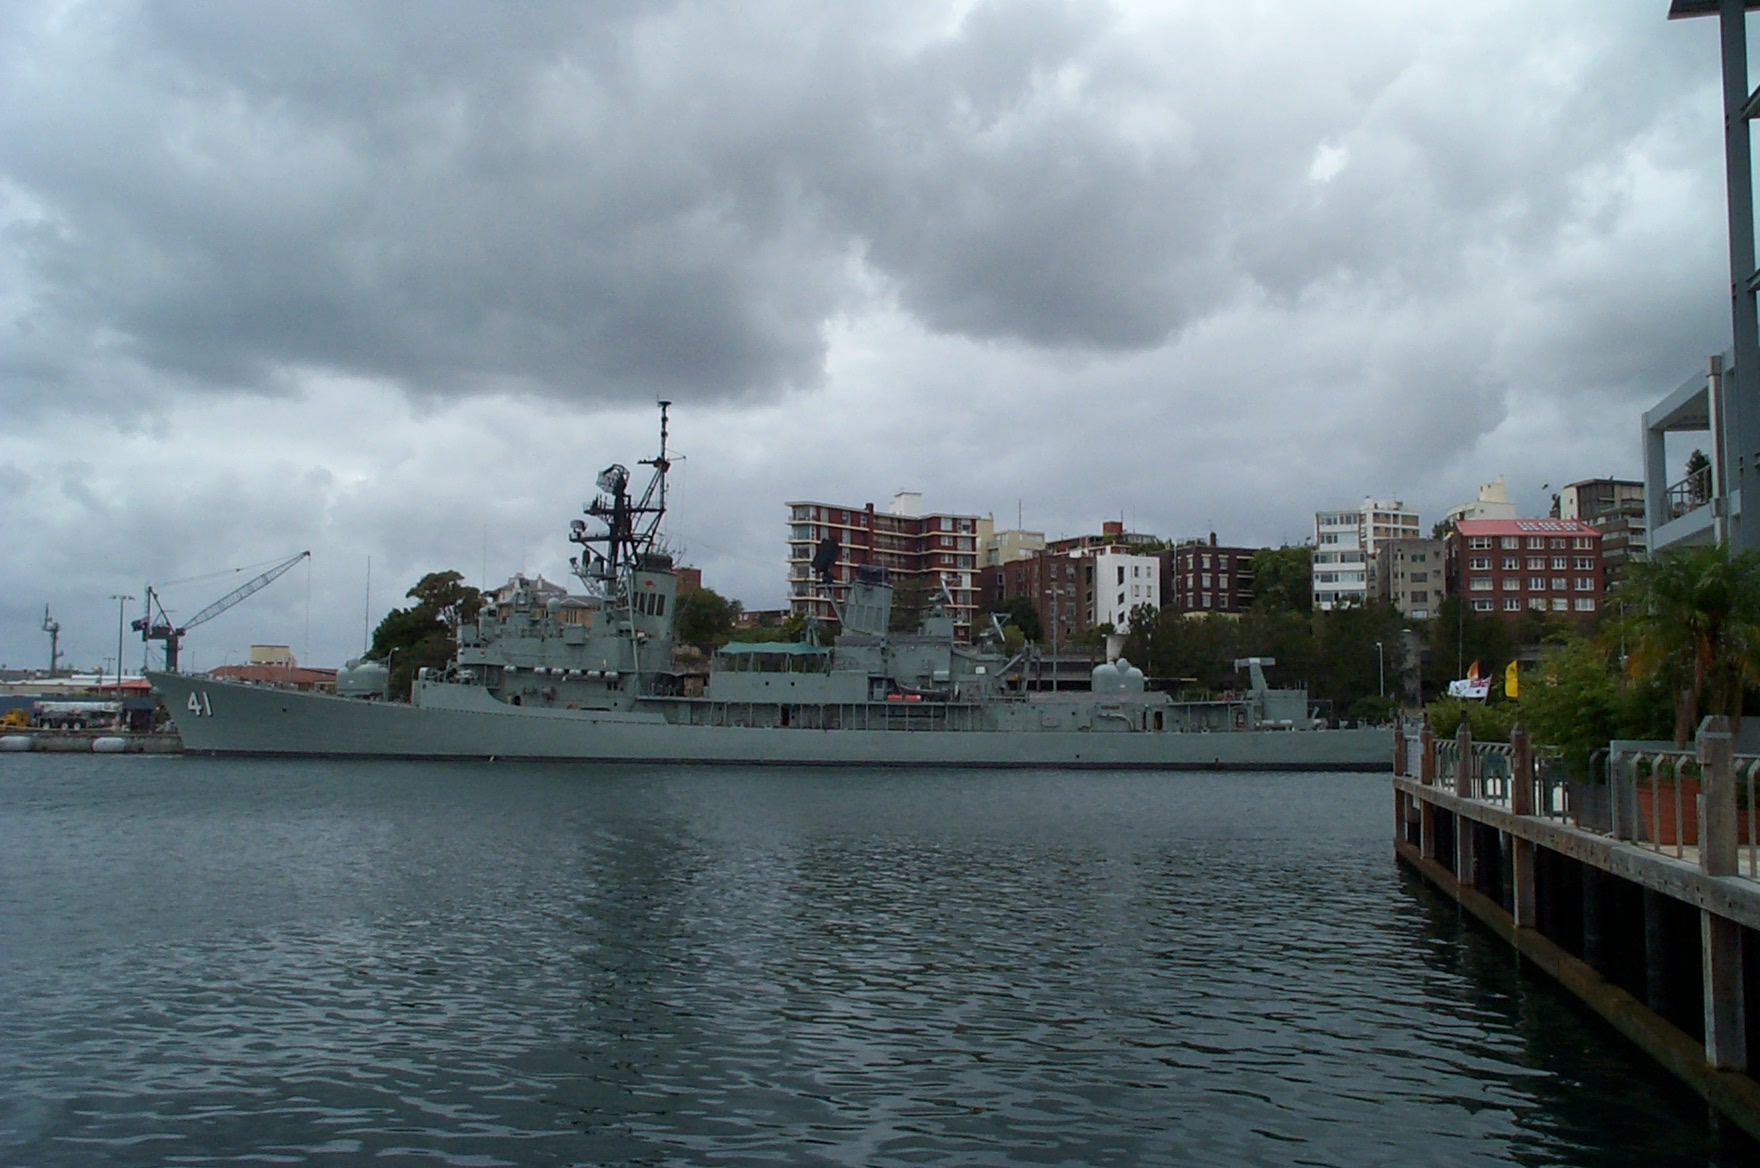 Naval Ship in the Sydney Harbour